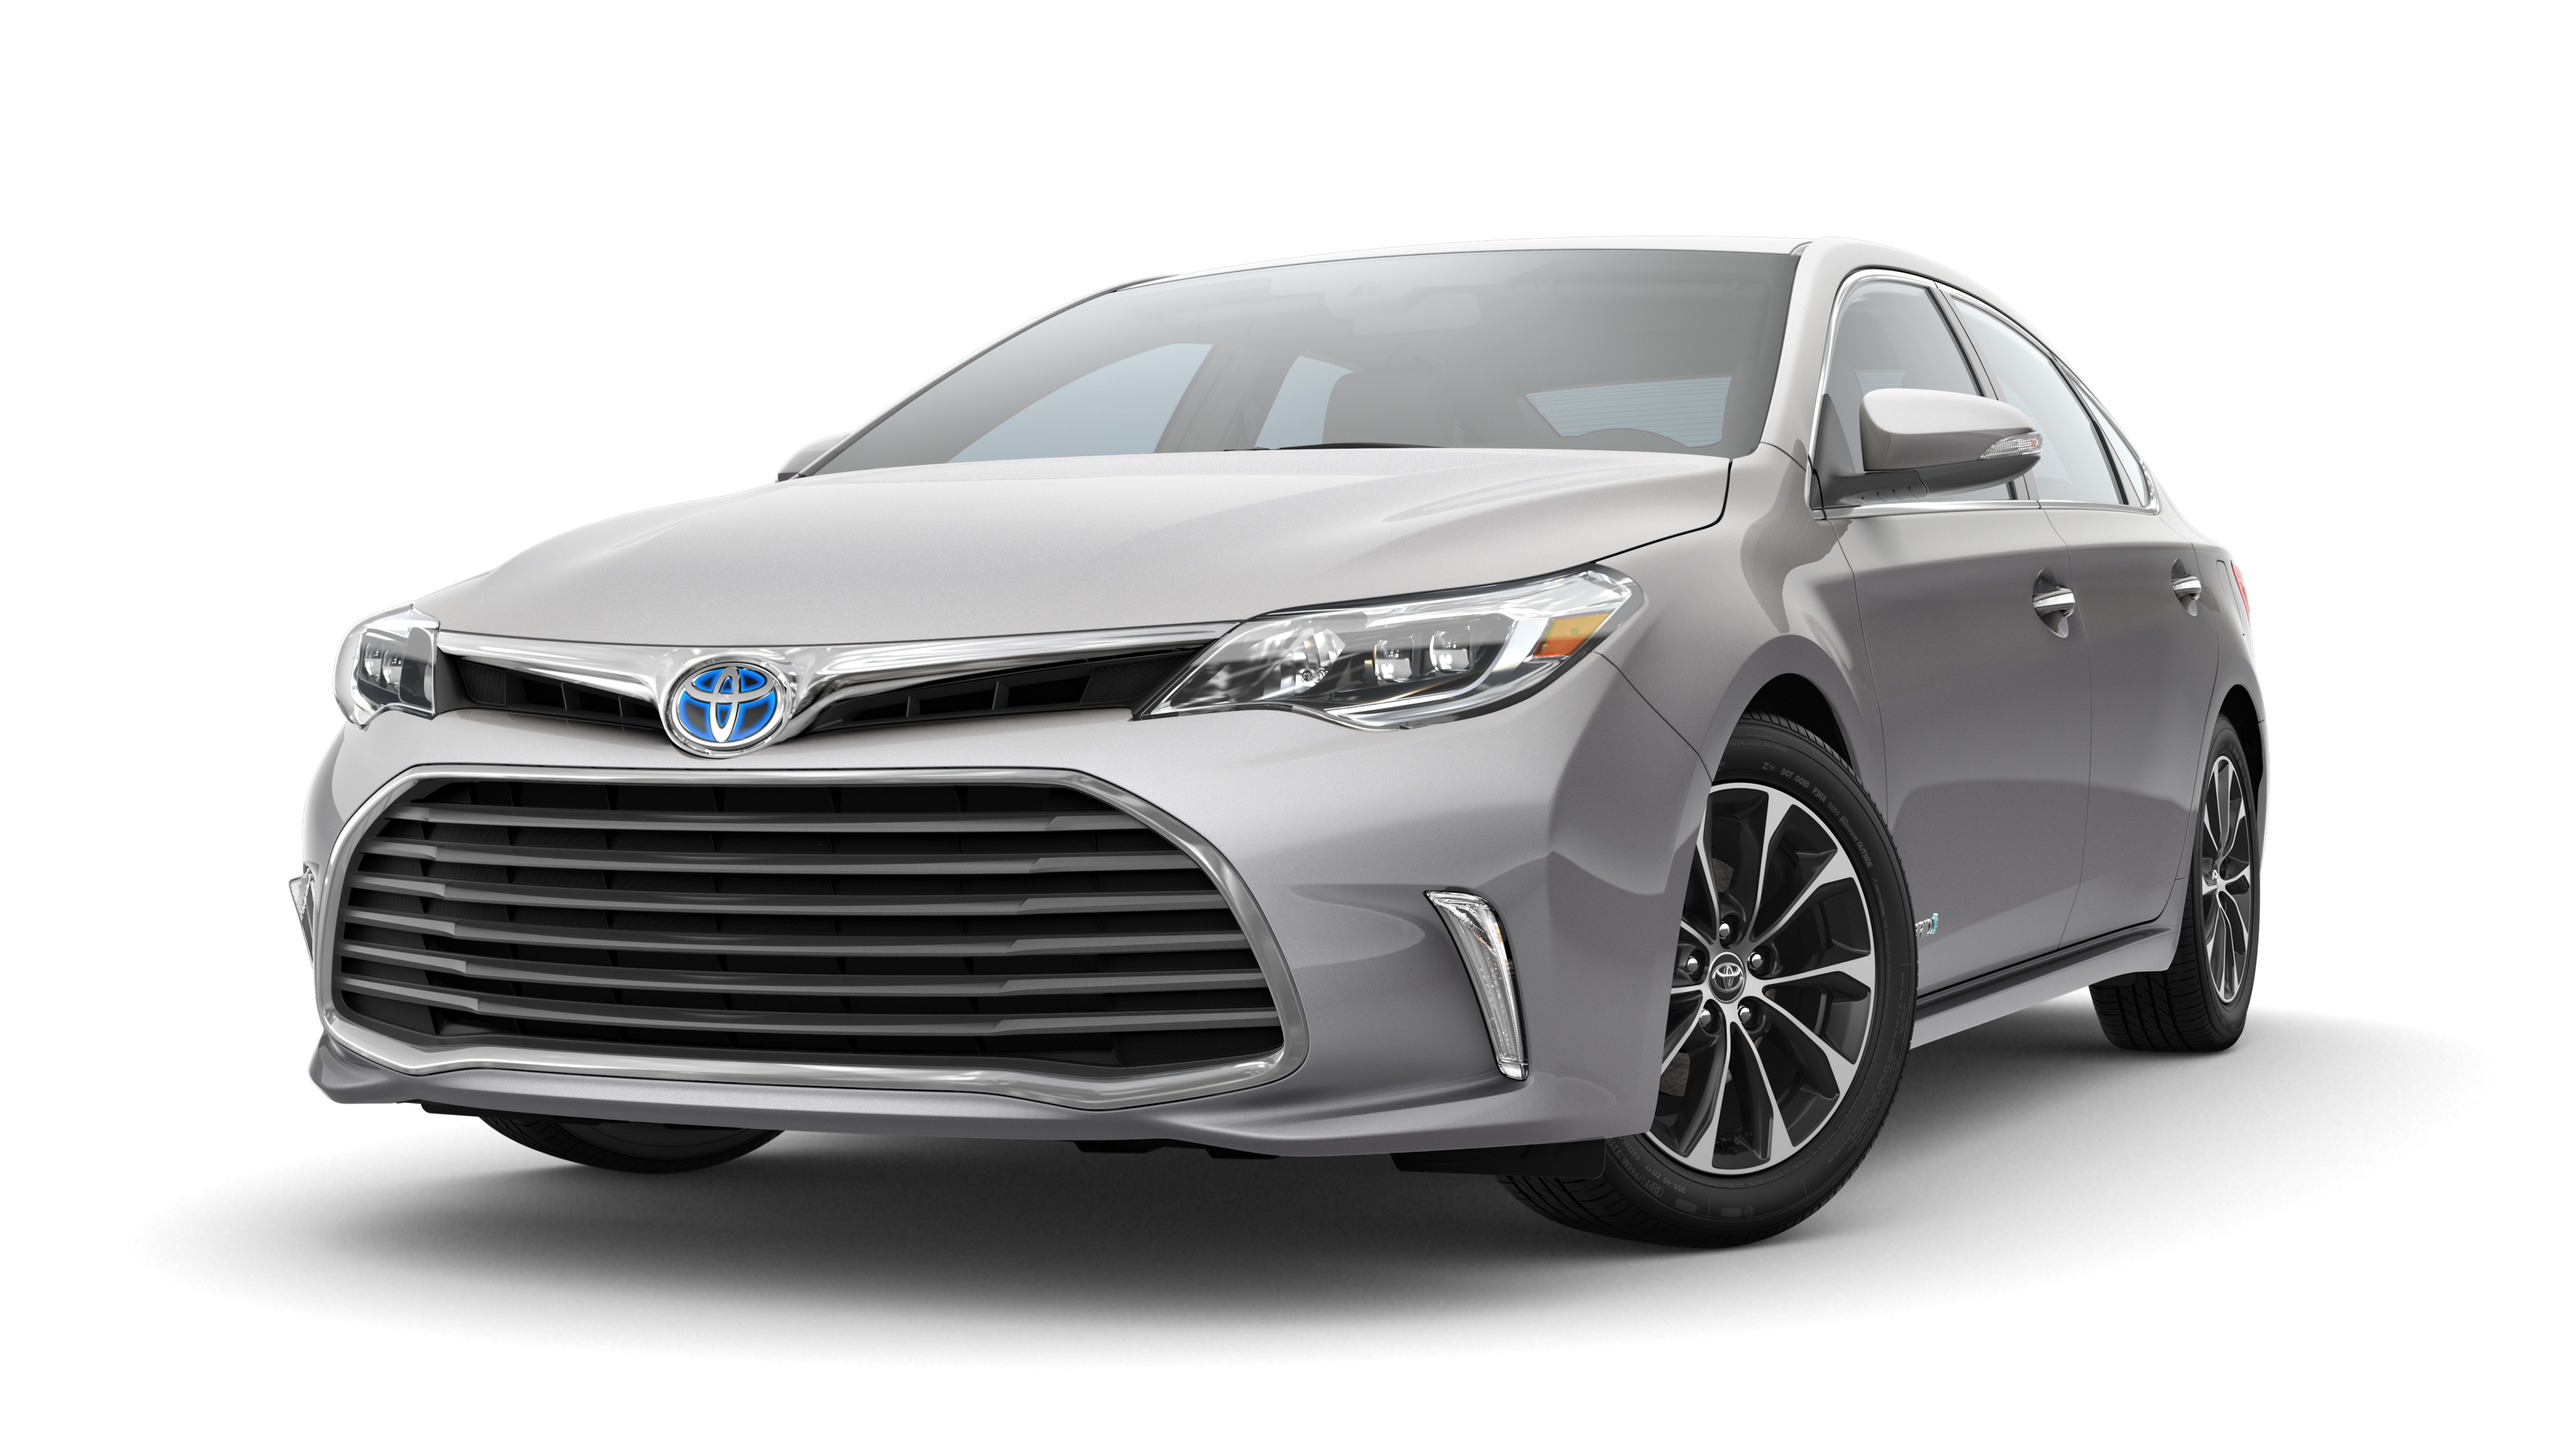 Buy your next vehicle at Toyota Marin in San Rafael, CA